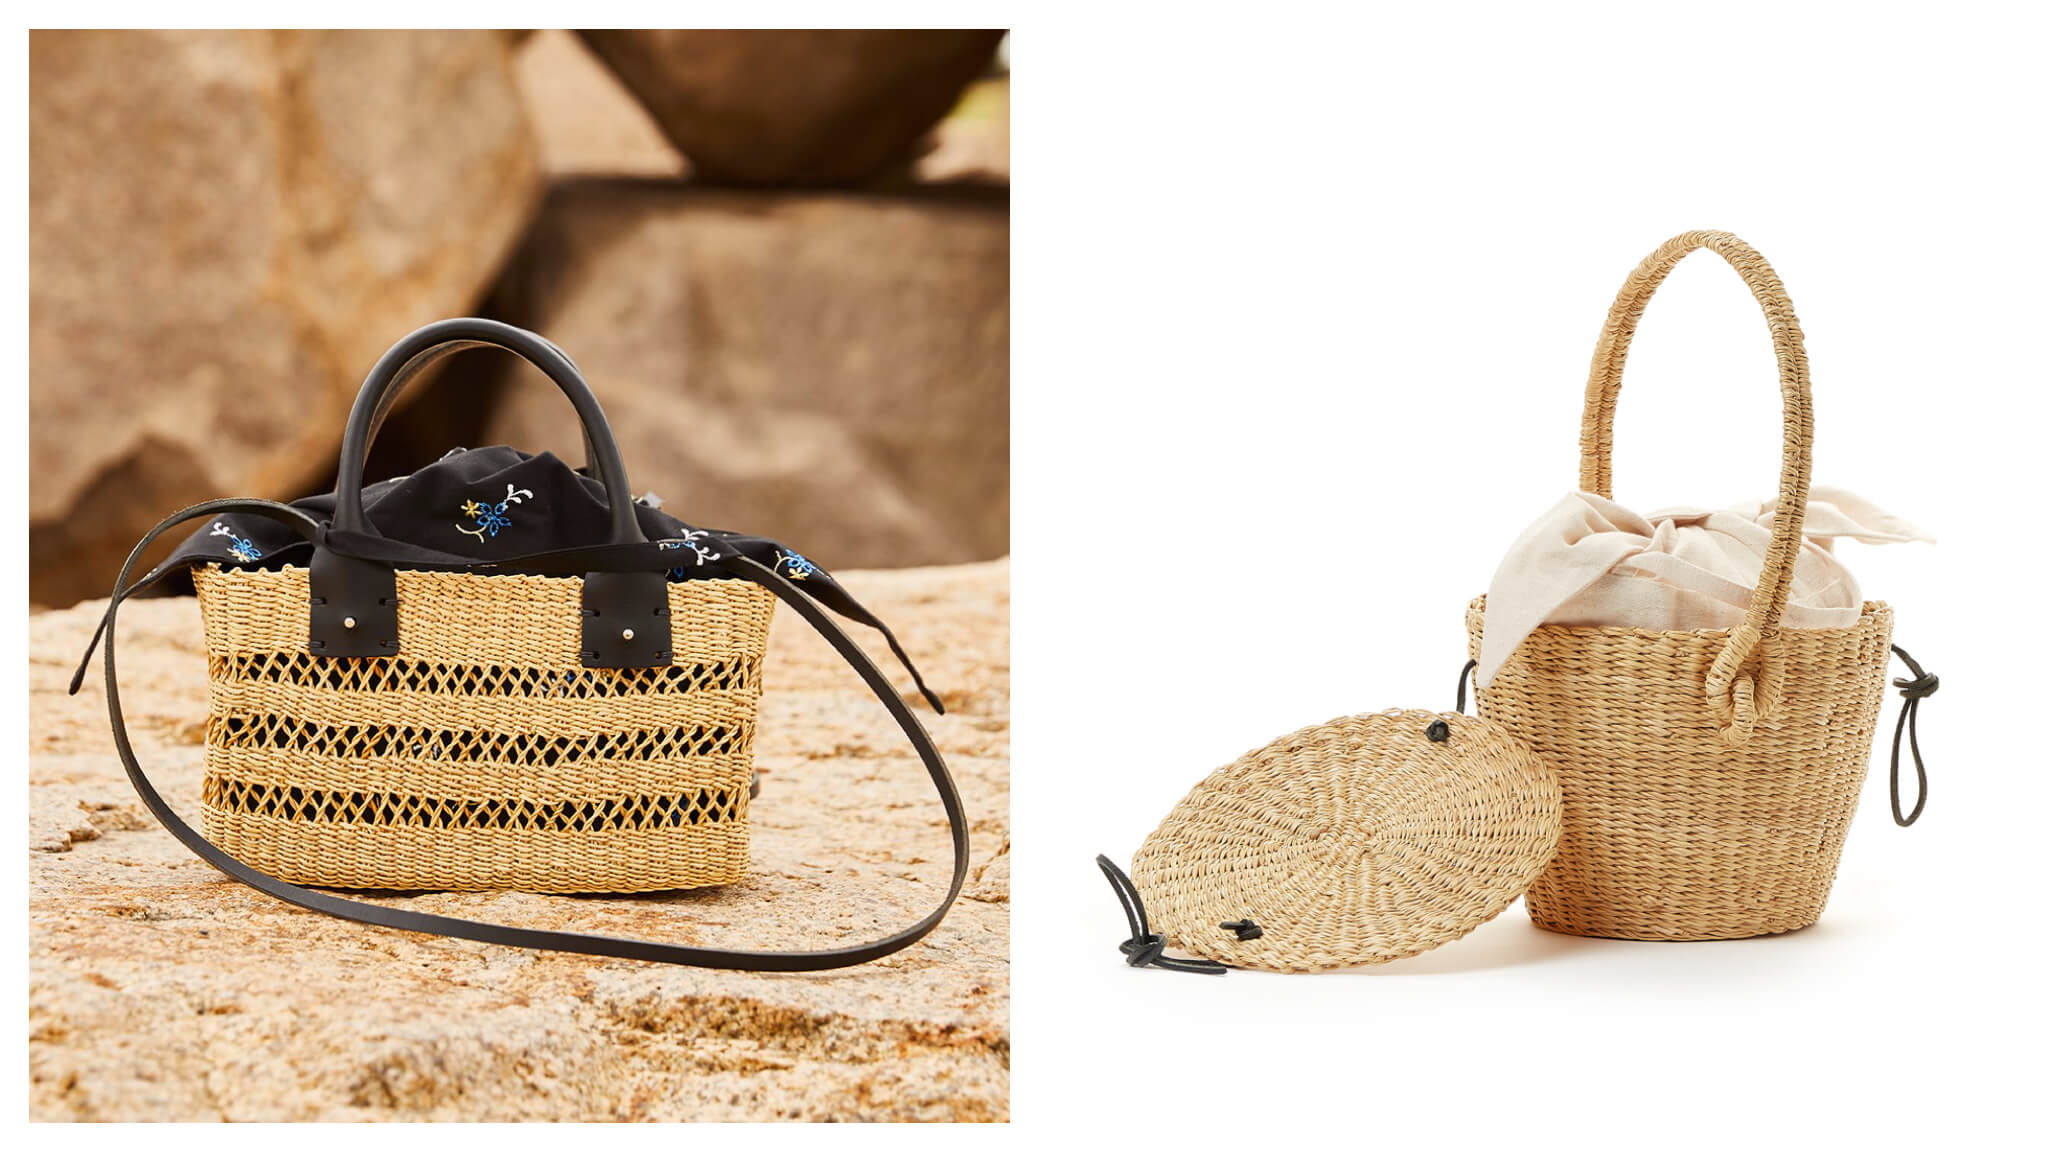 Left: A small wicker summer bag with details and black straps from Muuñ sits on a large stone, Right: A cute small wicker basket from Muuñ sits in front of a white background.